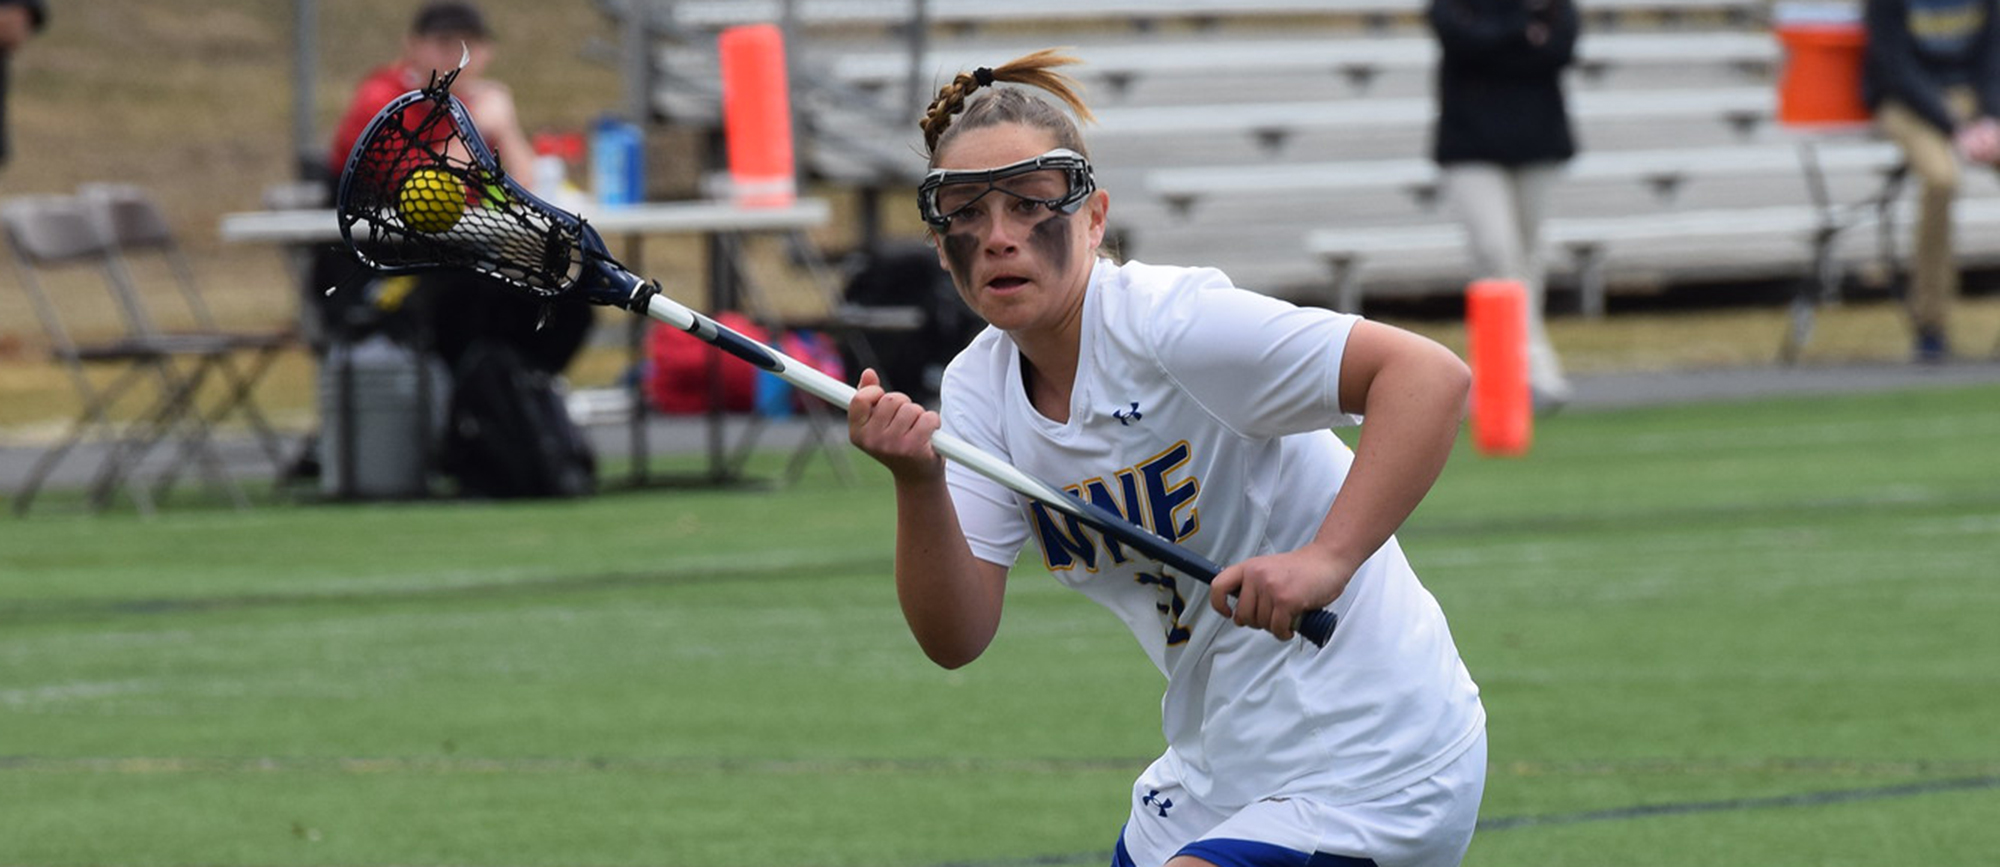 Liz Mazza scored five goals in Western New England's 25-12 CCC Tournament quarterfinal victory over Curry on Saturday. (Photo by Rachael Margossian)